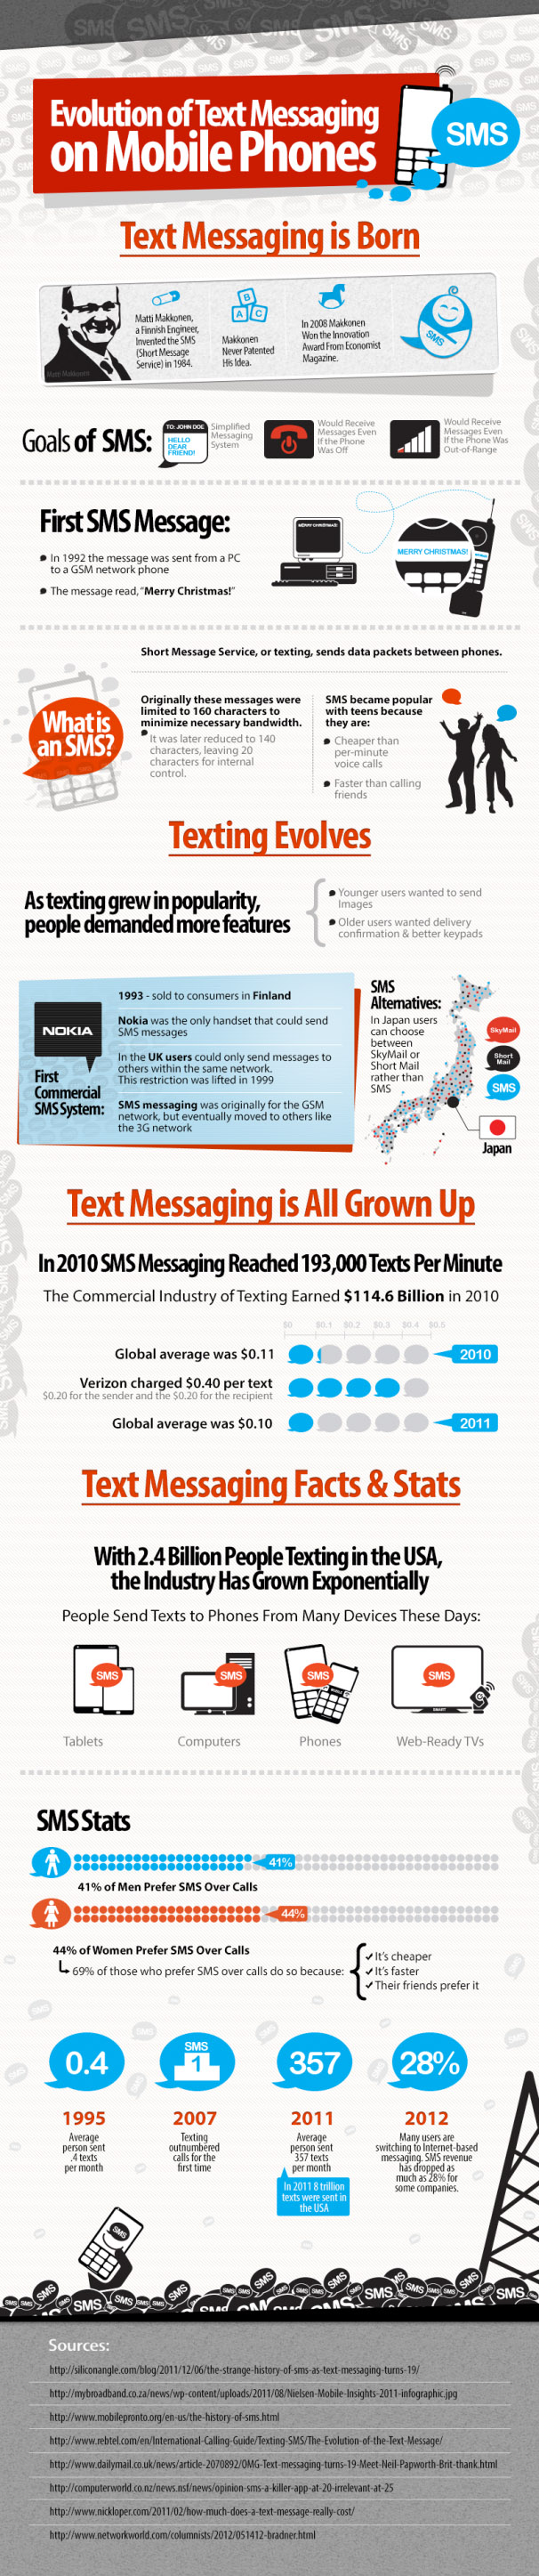 Evolution-of-Text-Messaging